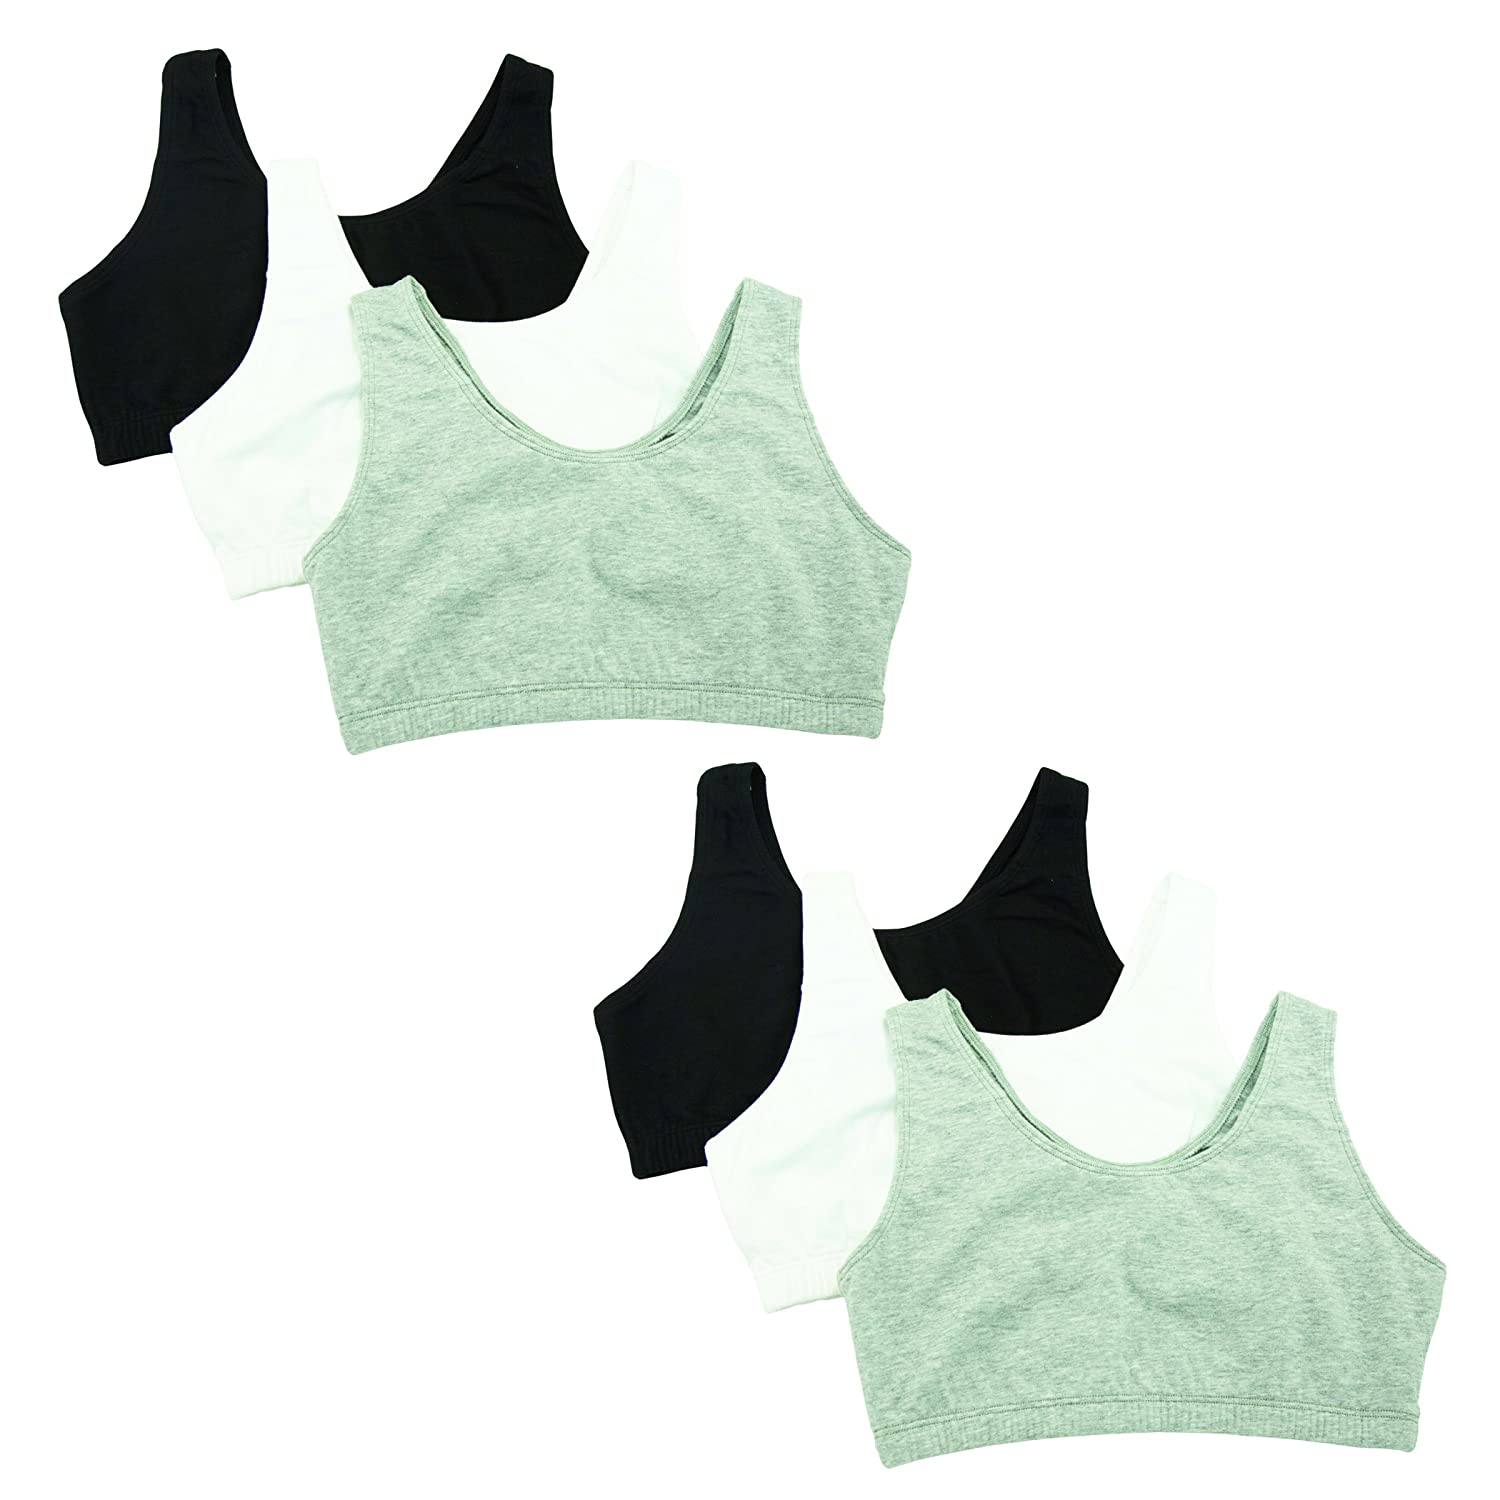 Fruit of the Loom Womens Built-Up Sports Bra Pack of 6